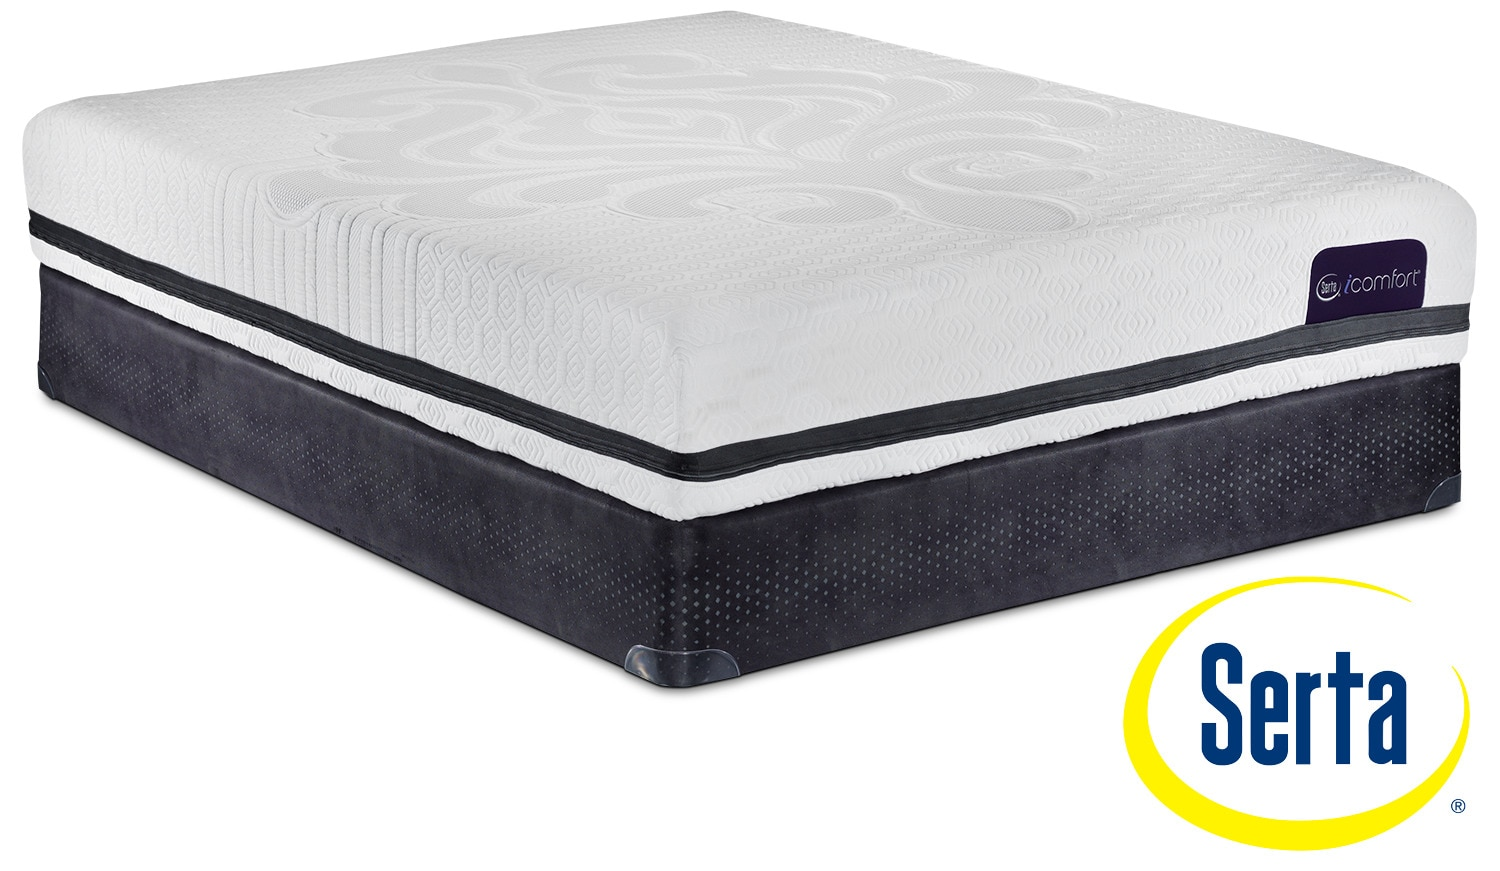 Mattresses and Bedding - Serta iComfort Eco Contingence Firm Queen Mattress and Boxspring Set